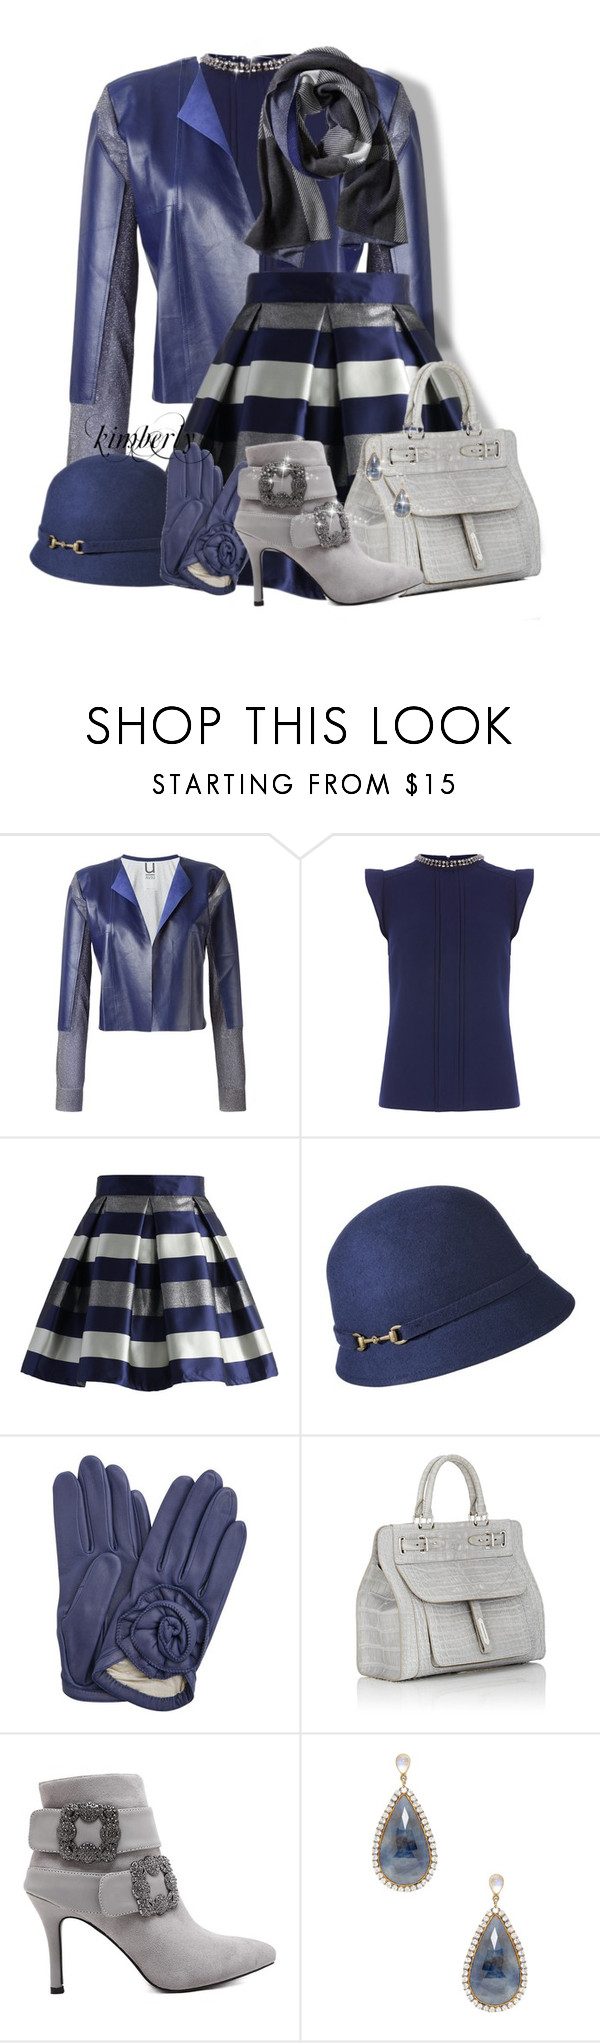 Leather Jacket by cavell on Polyvore featuring Oasis, Aviù, Chicwish, Fontana Milano 1915, Shay and Banana Republic